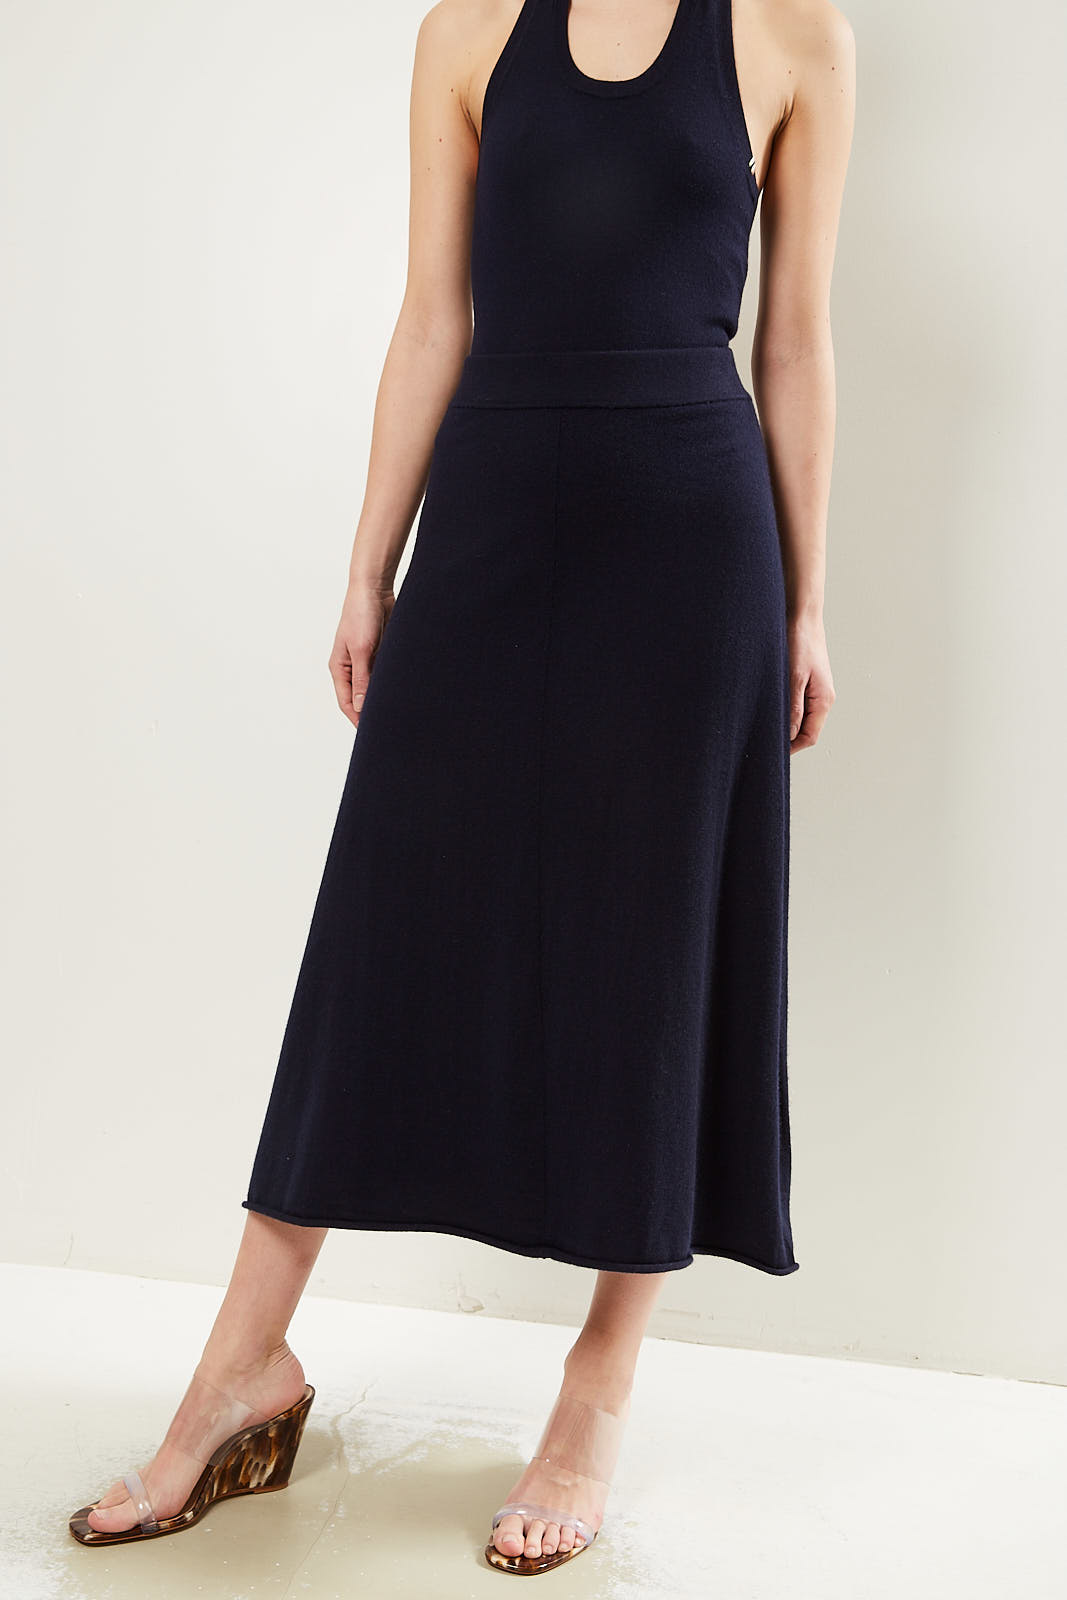 extreme cashmere - Midi cashmere skirt navy